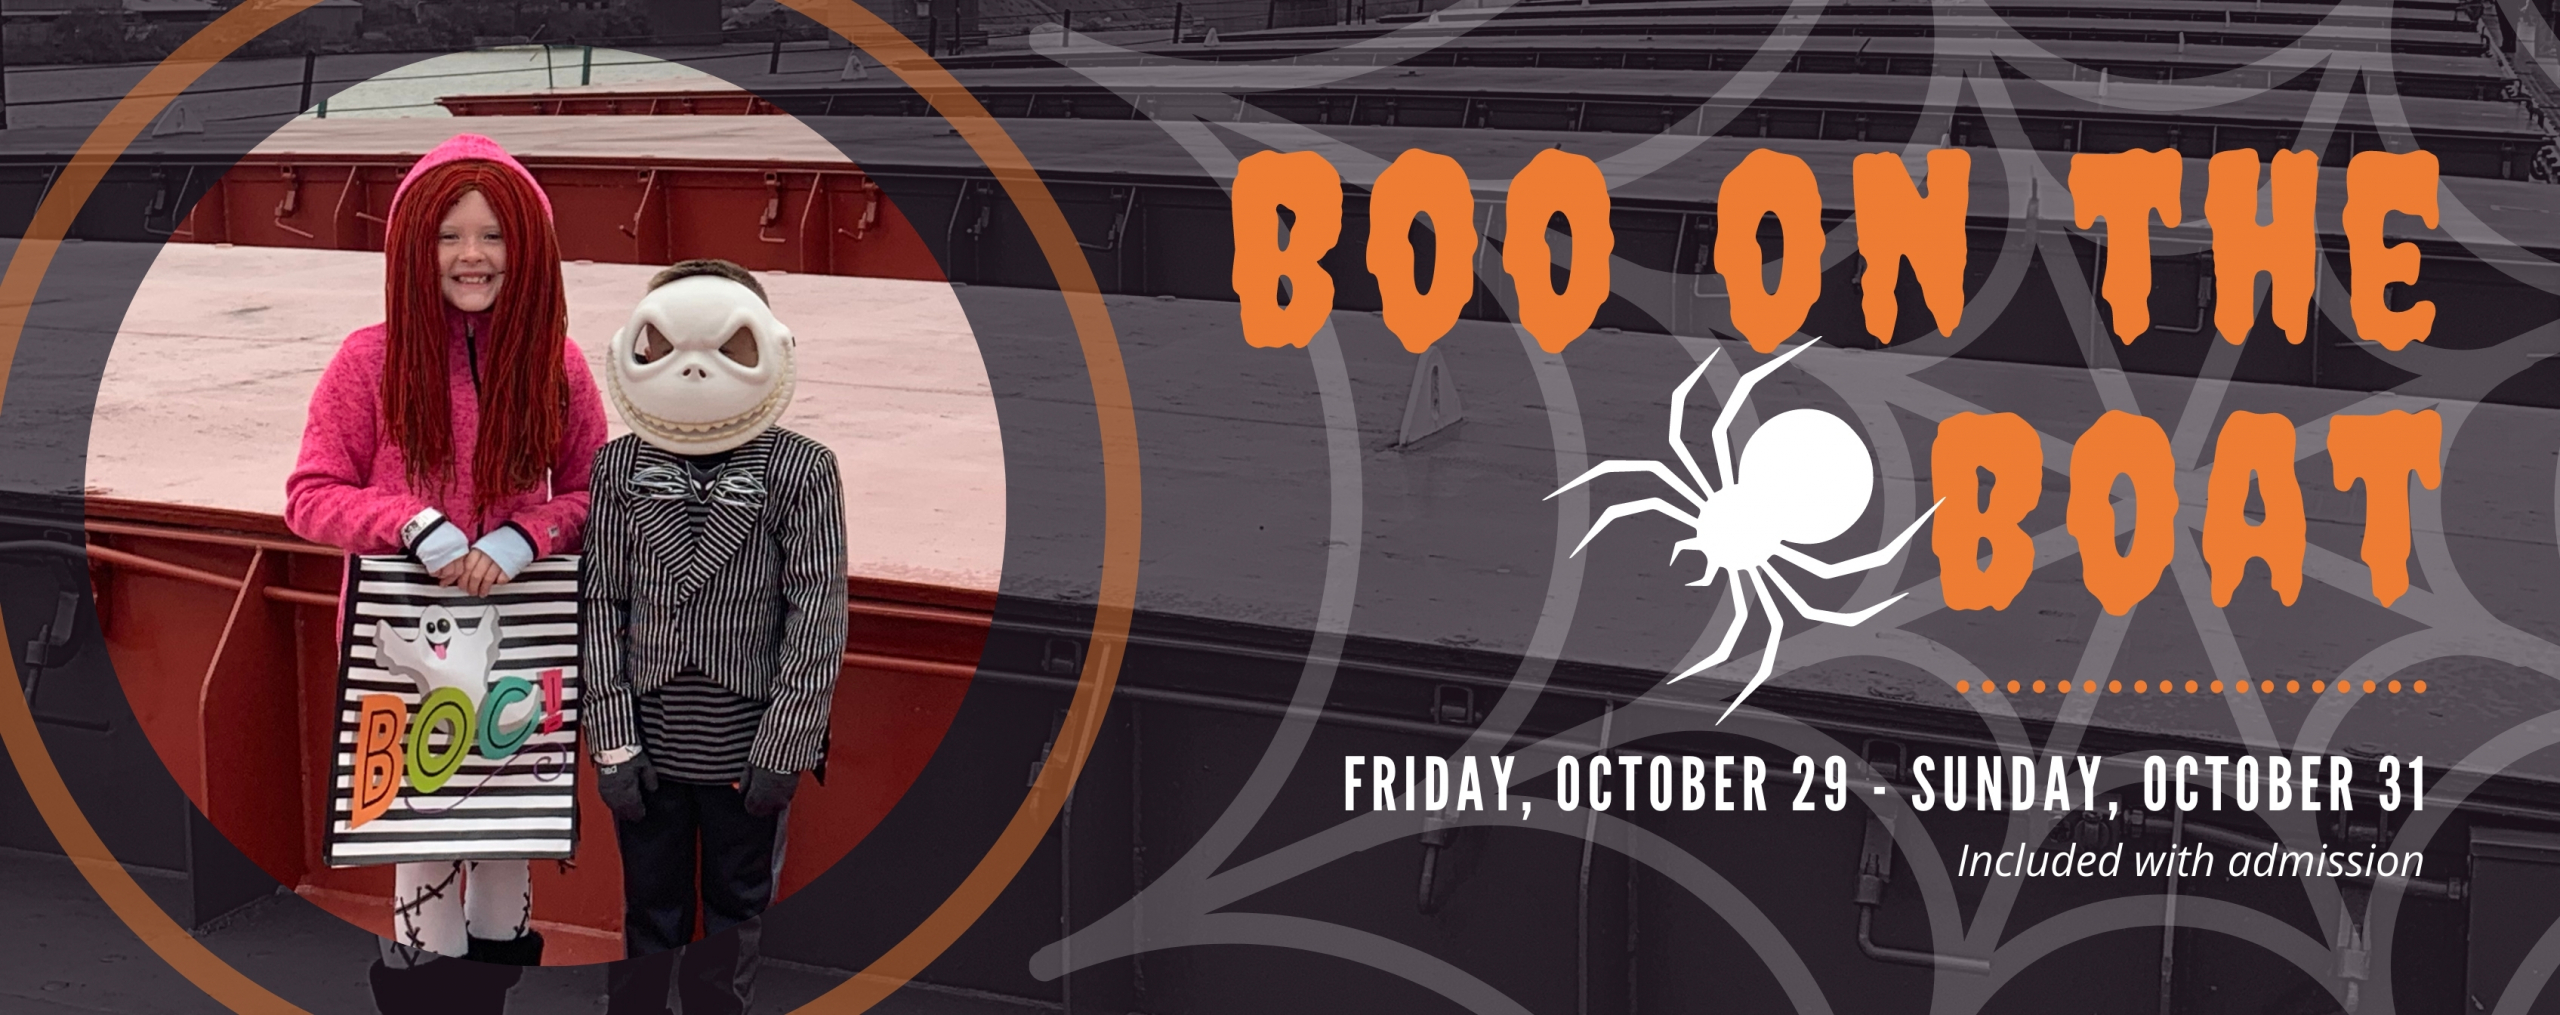 Boo on the Boat. October 29 to October 31